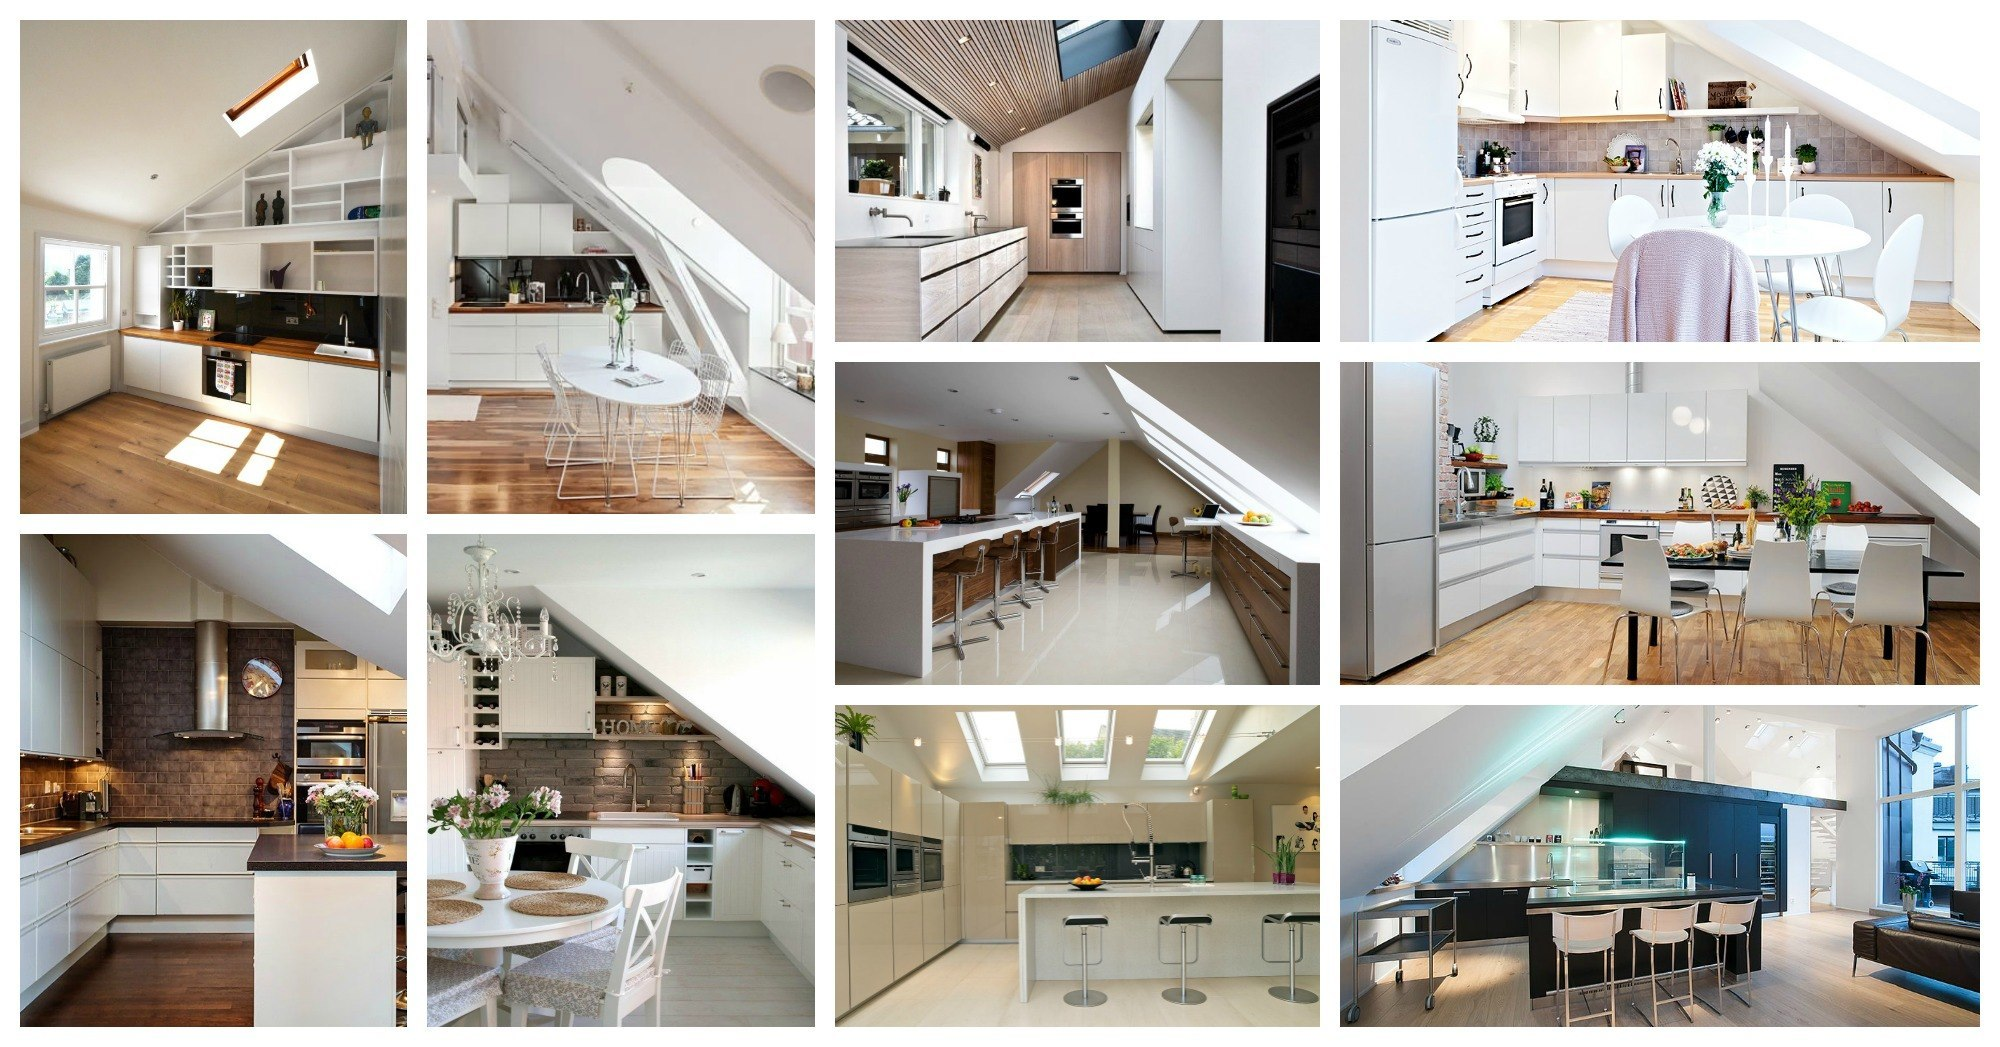 Designs Of Kitchens In Interior Designing Absolutely Stunning Attic Kitchens That Will Take Your